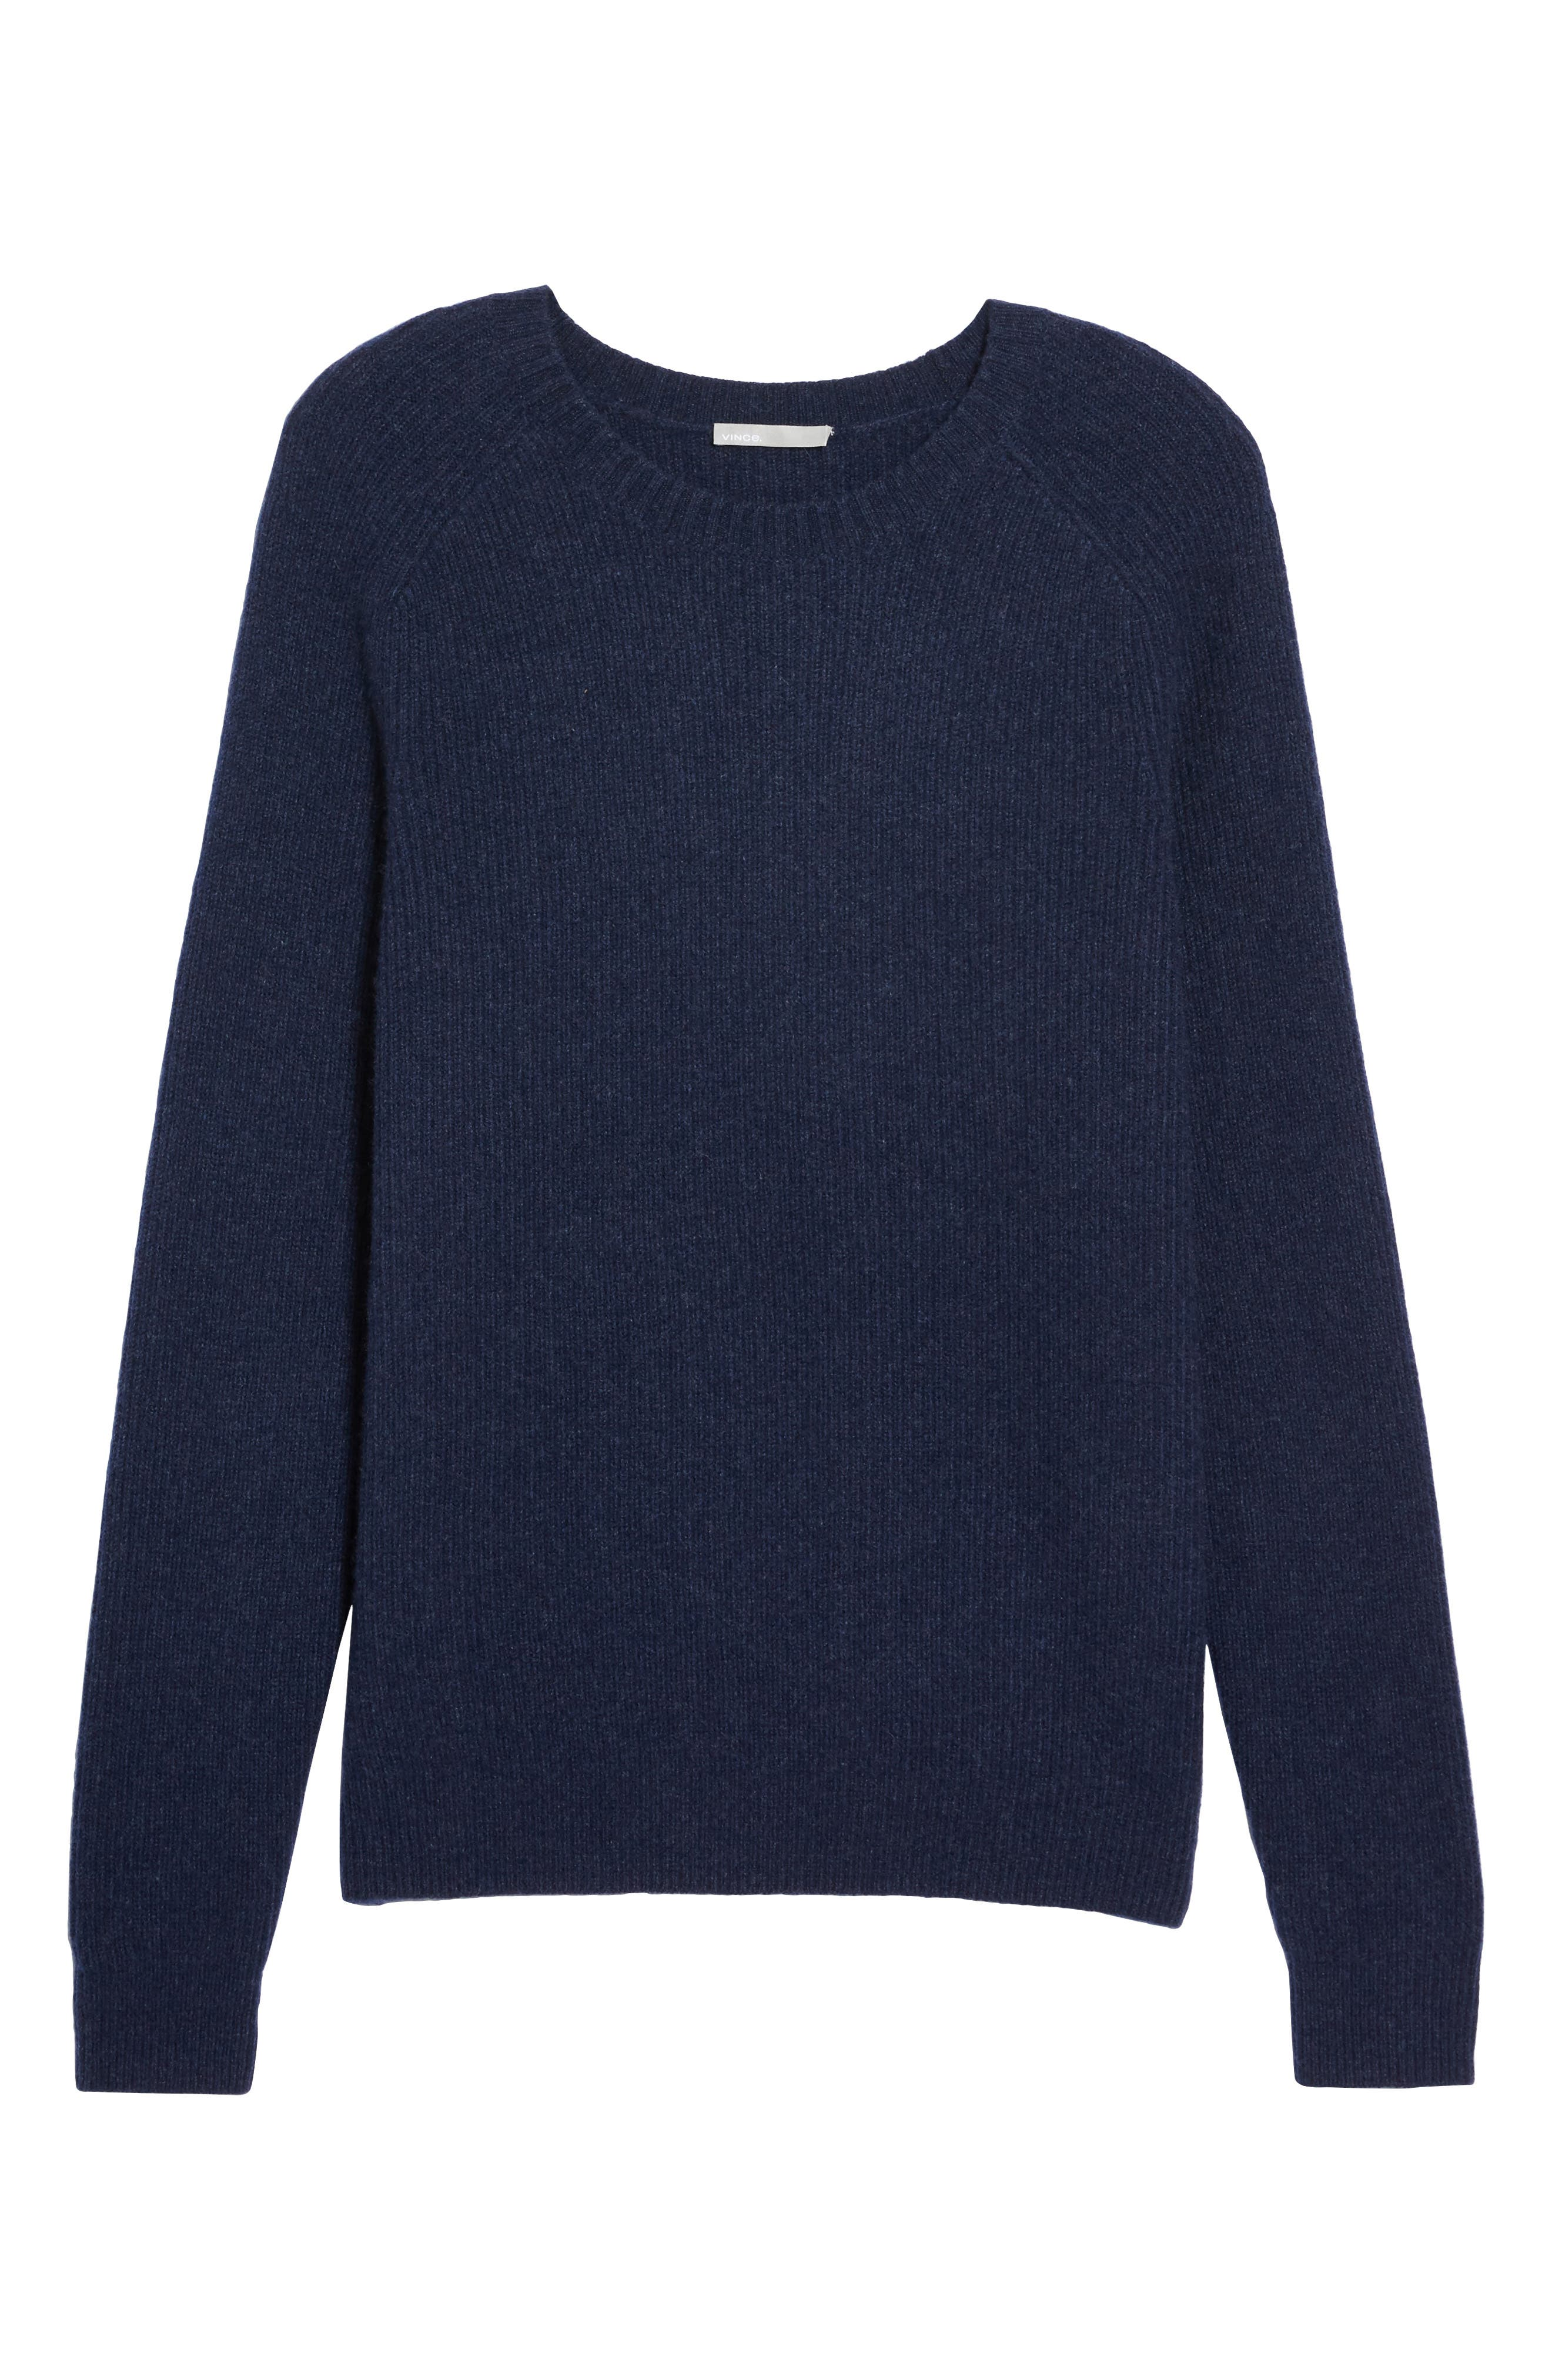 Ribbed Wool & Cashmere Raglan Sweater,                             Alternate thumbnail 23, color,